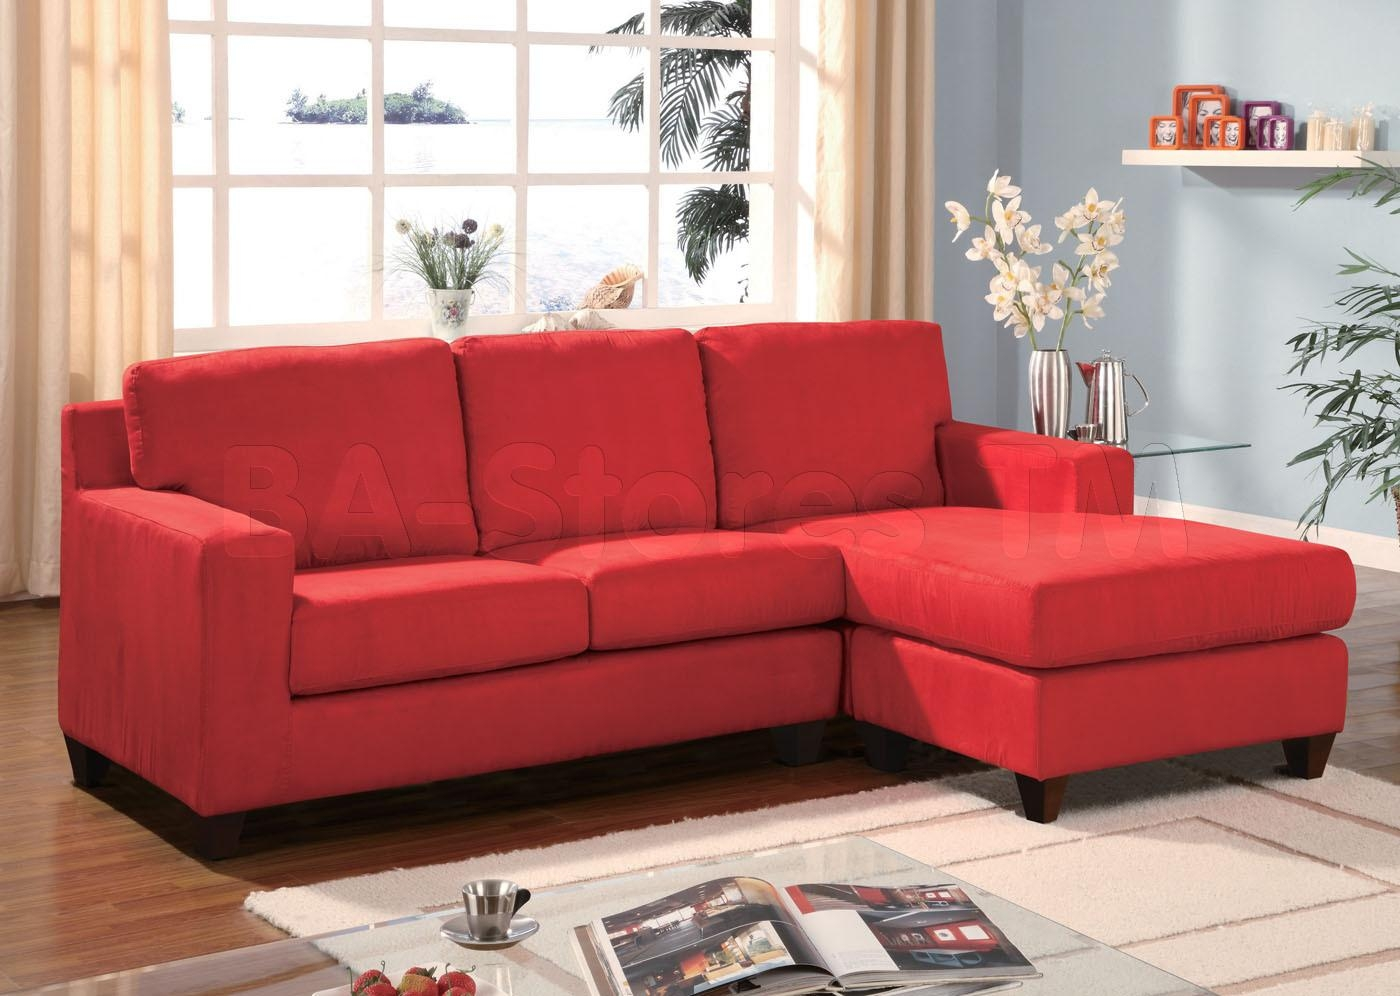 Red Sectional Sofa Microfiber | Centerfieldbar In Red Microfiber Sectional Sofas (Image 12 of 21)